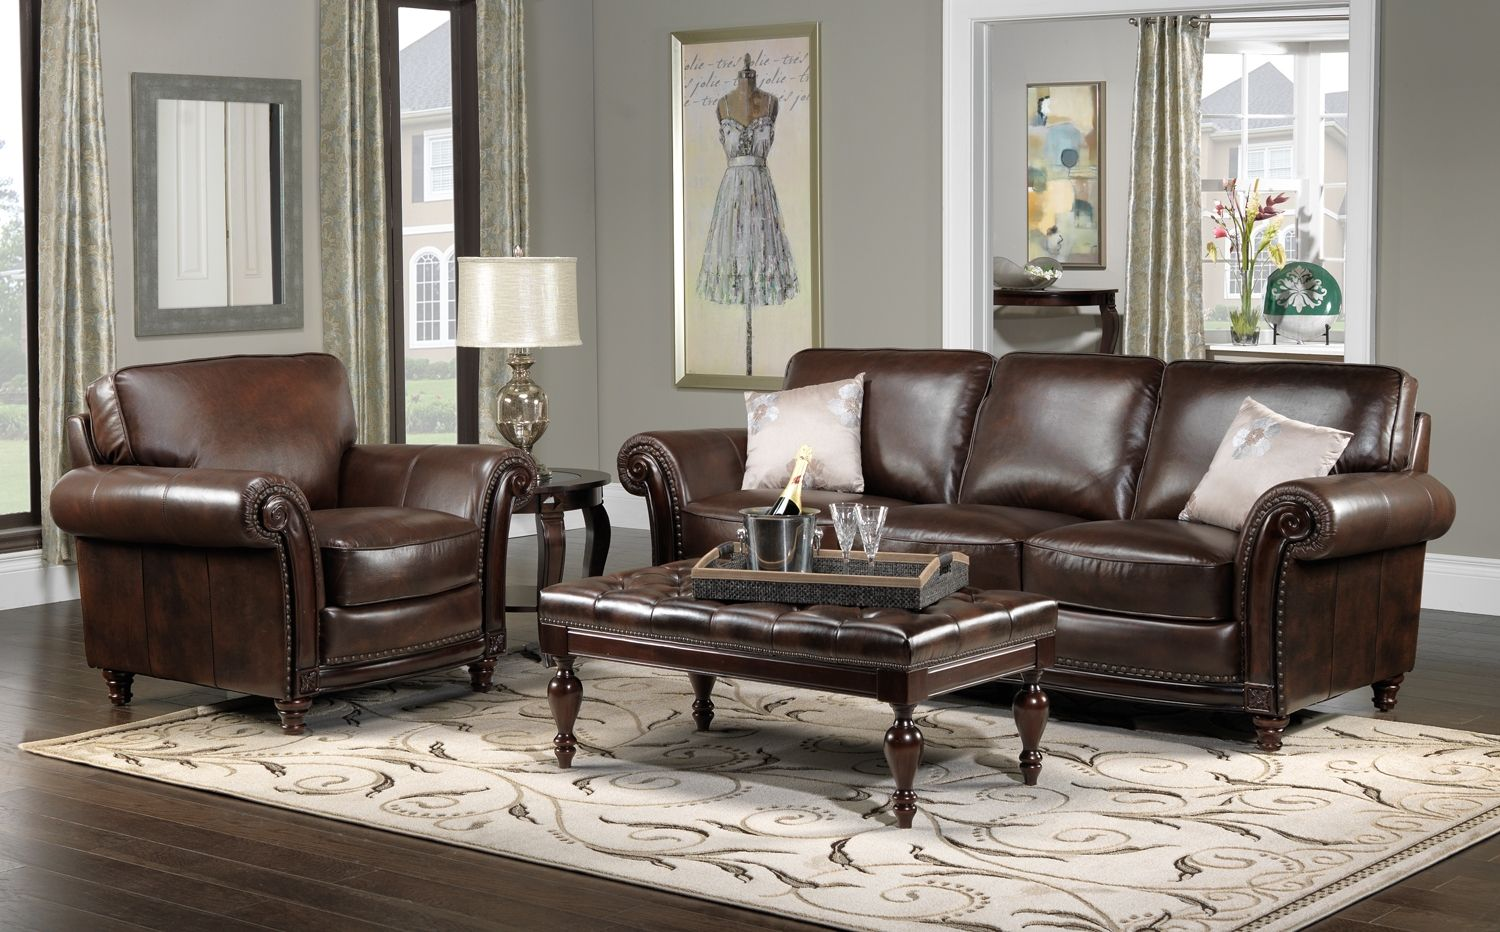 Dream house decor ideas for brown leather furniture gngkxz for Brown living room furniture